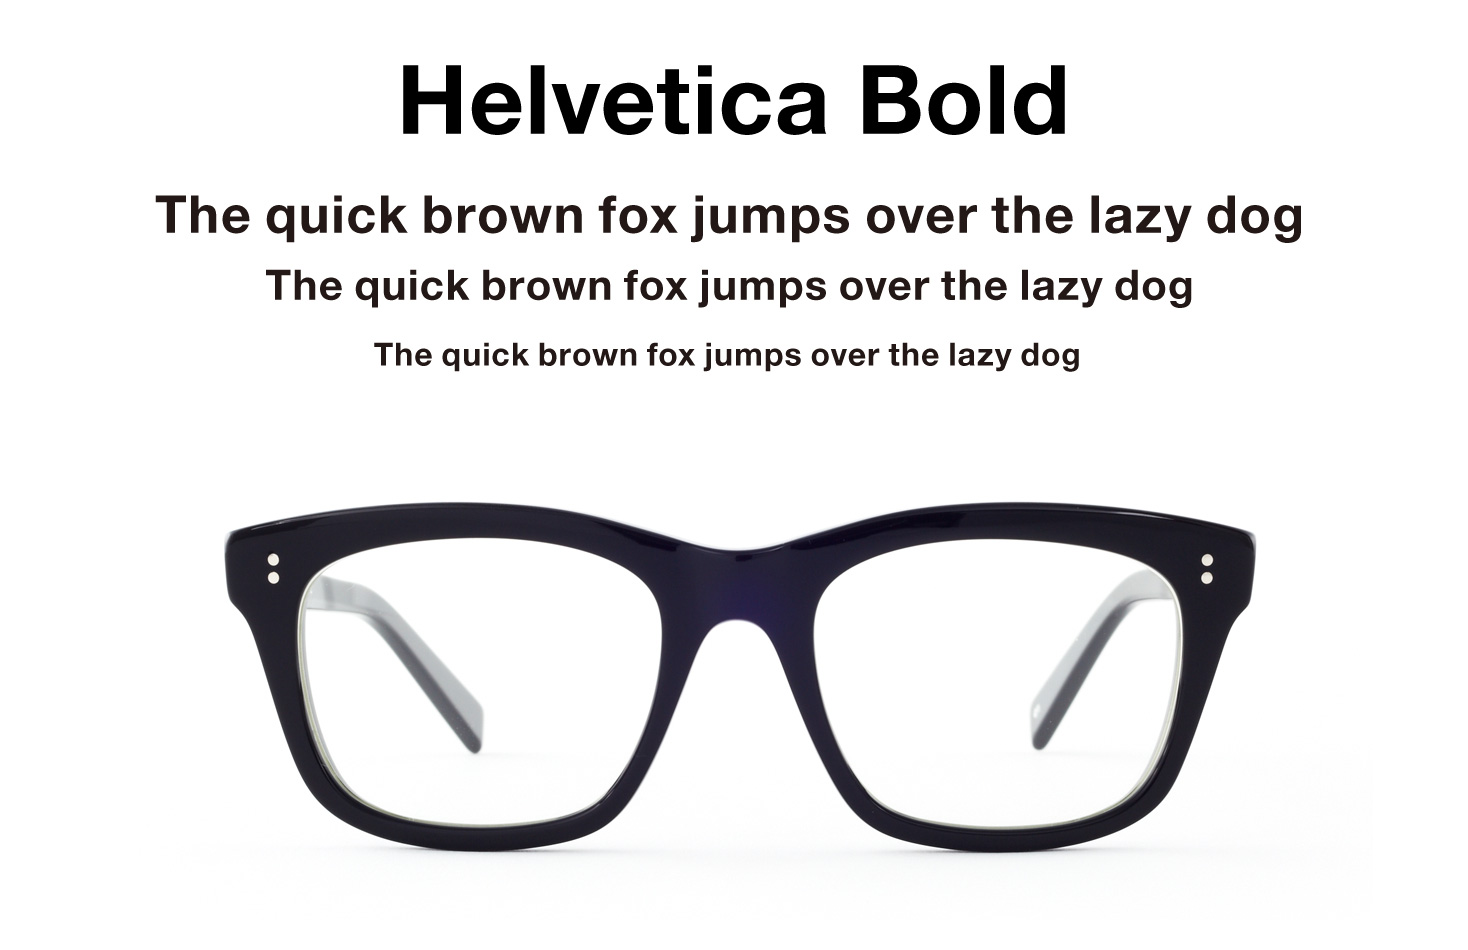 Japanese Eyeglass Frame Designers : Helvetica for your nose. Eyeglasses inspired by Type ...